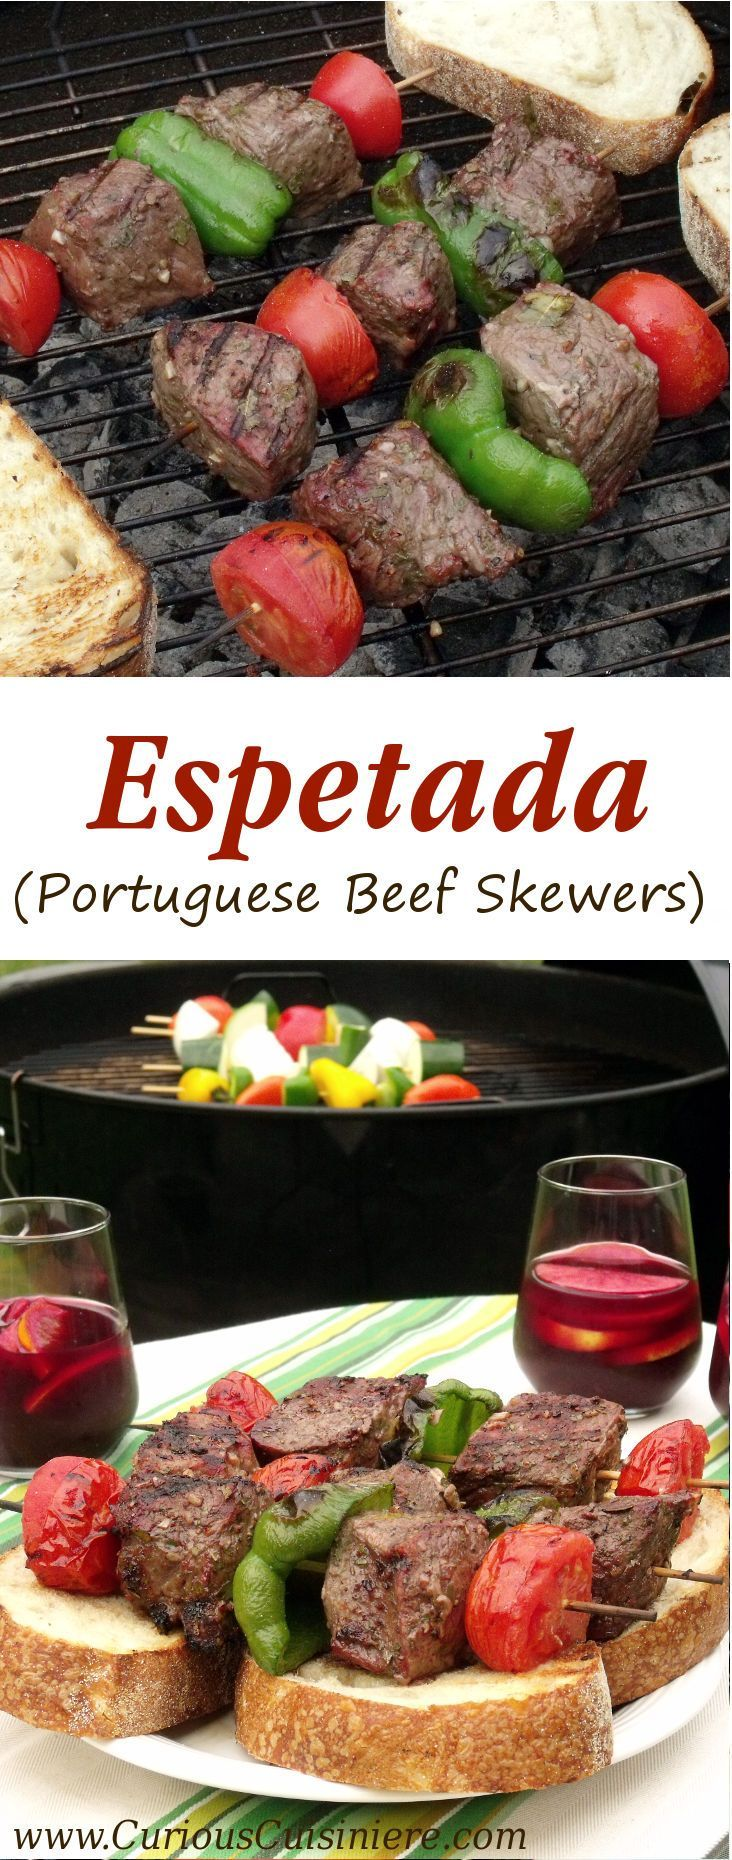 Big, juicy grill-seared chunks of beef served over thick slices of artisan bread. Espetada, or Portuguese Beef Skewers, calls for a party, and a party is what we have for you today! | www.CuriousCuisiniere.com